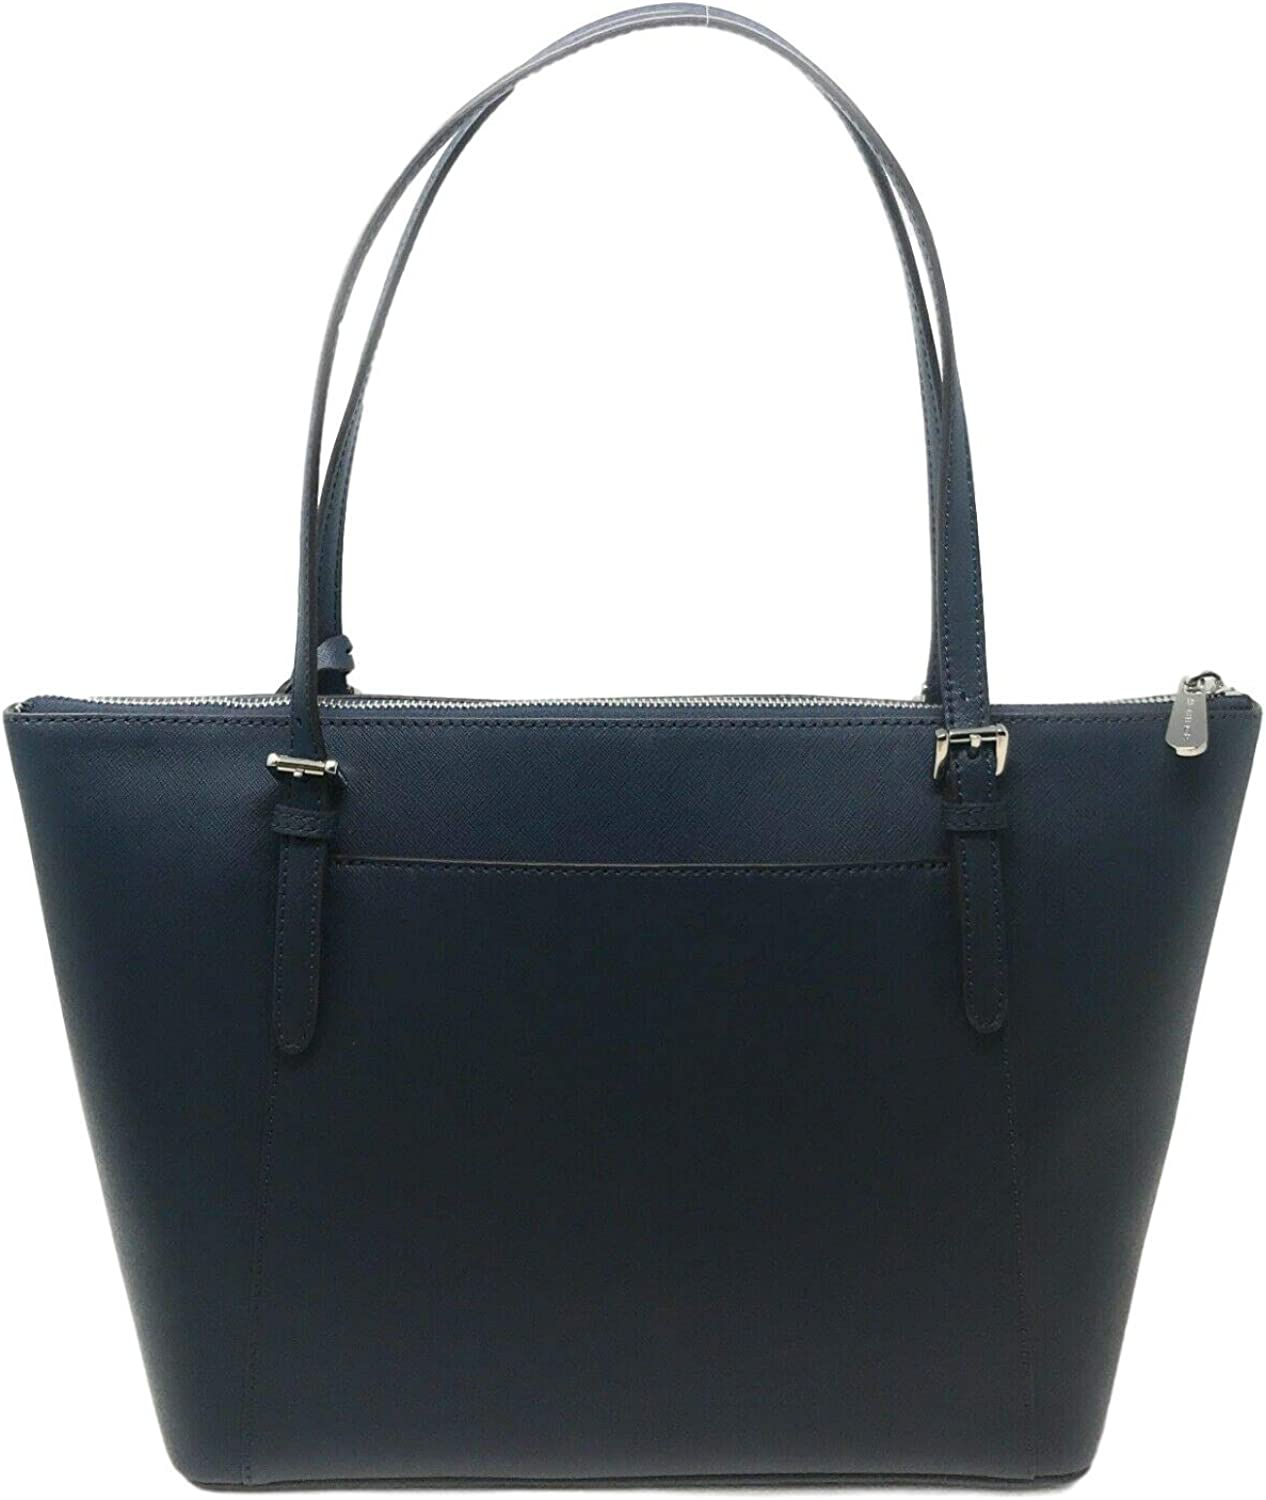 Michael Kors Women's Ciara Large East West Top Zip Tote